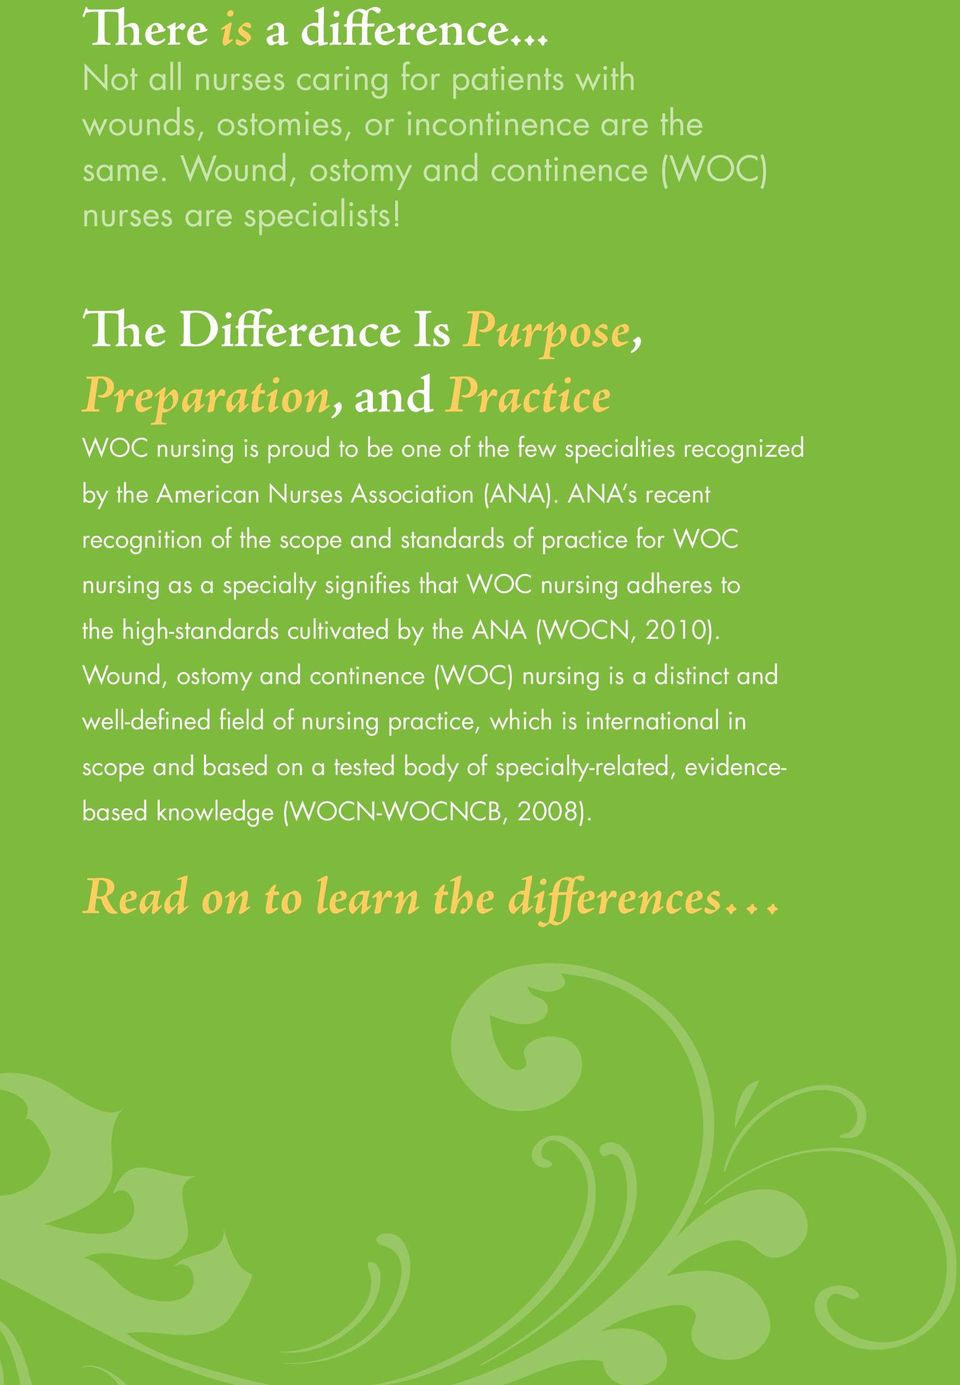 ANA s recent recognition of the scope and standards of practice for WOC nursing as a specialty signifies that WOC nursing adheres to the high-standards cultivated by the ANA (WOCN, 2010).